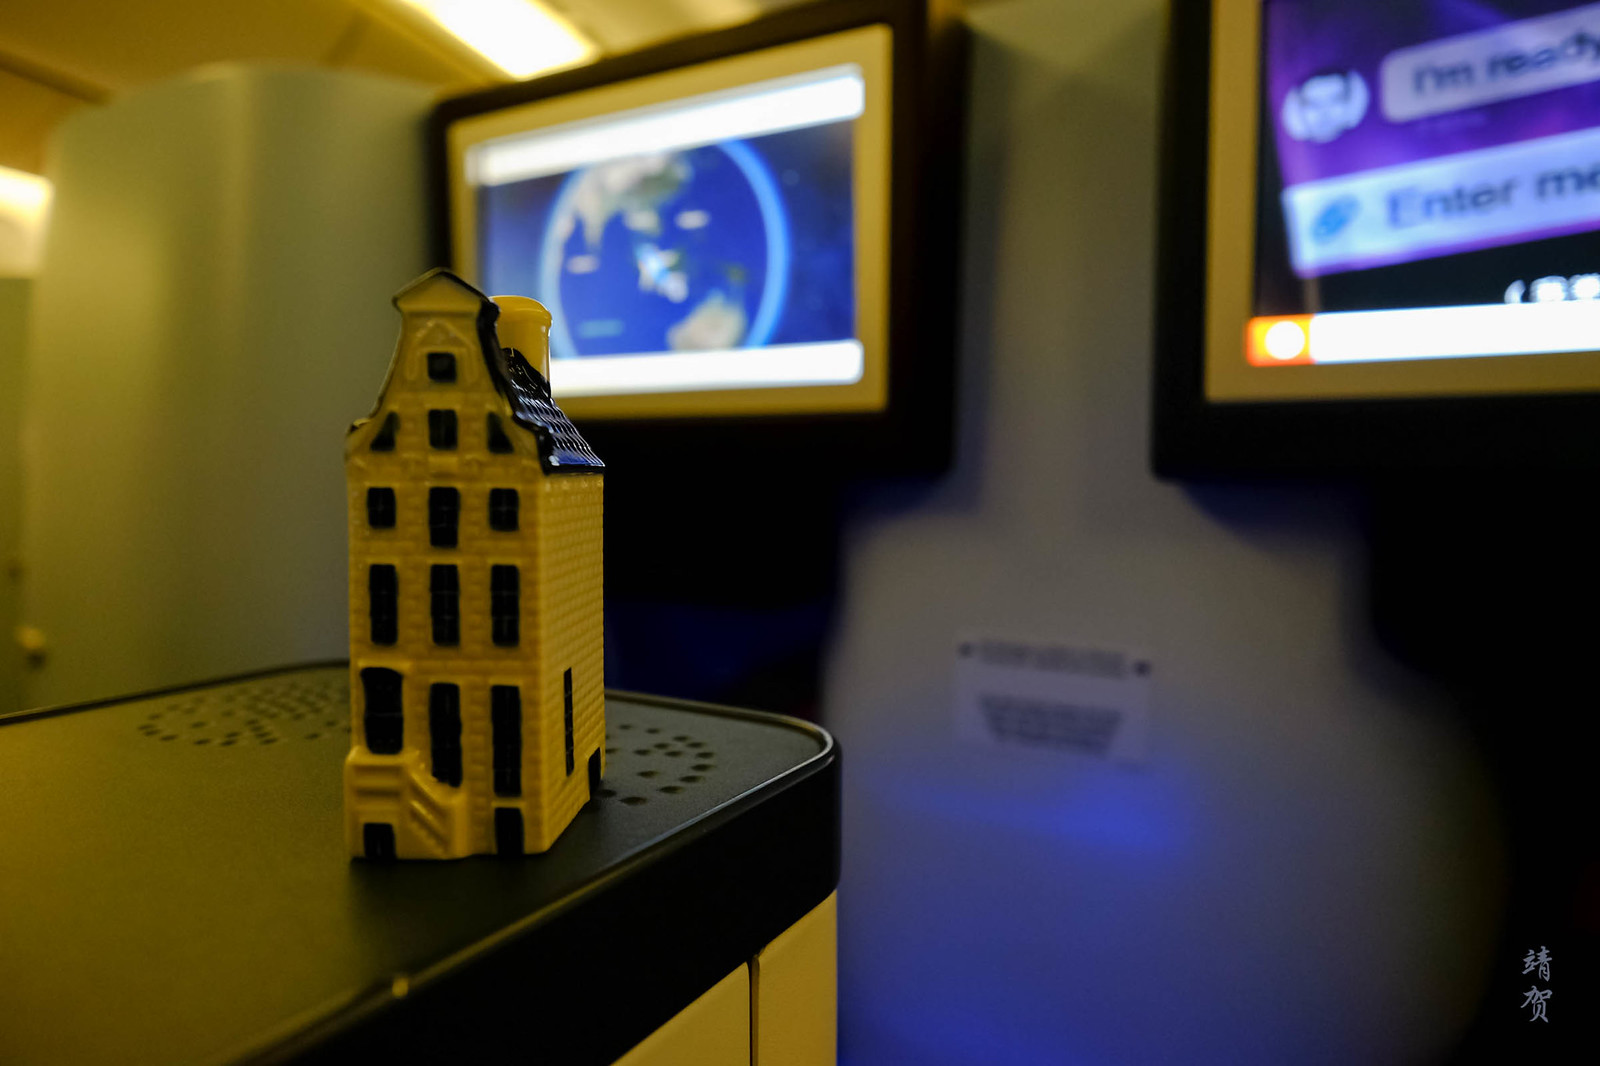 KLM's Delft Blue houses